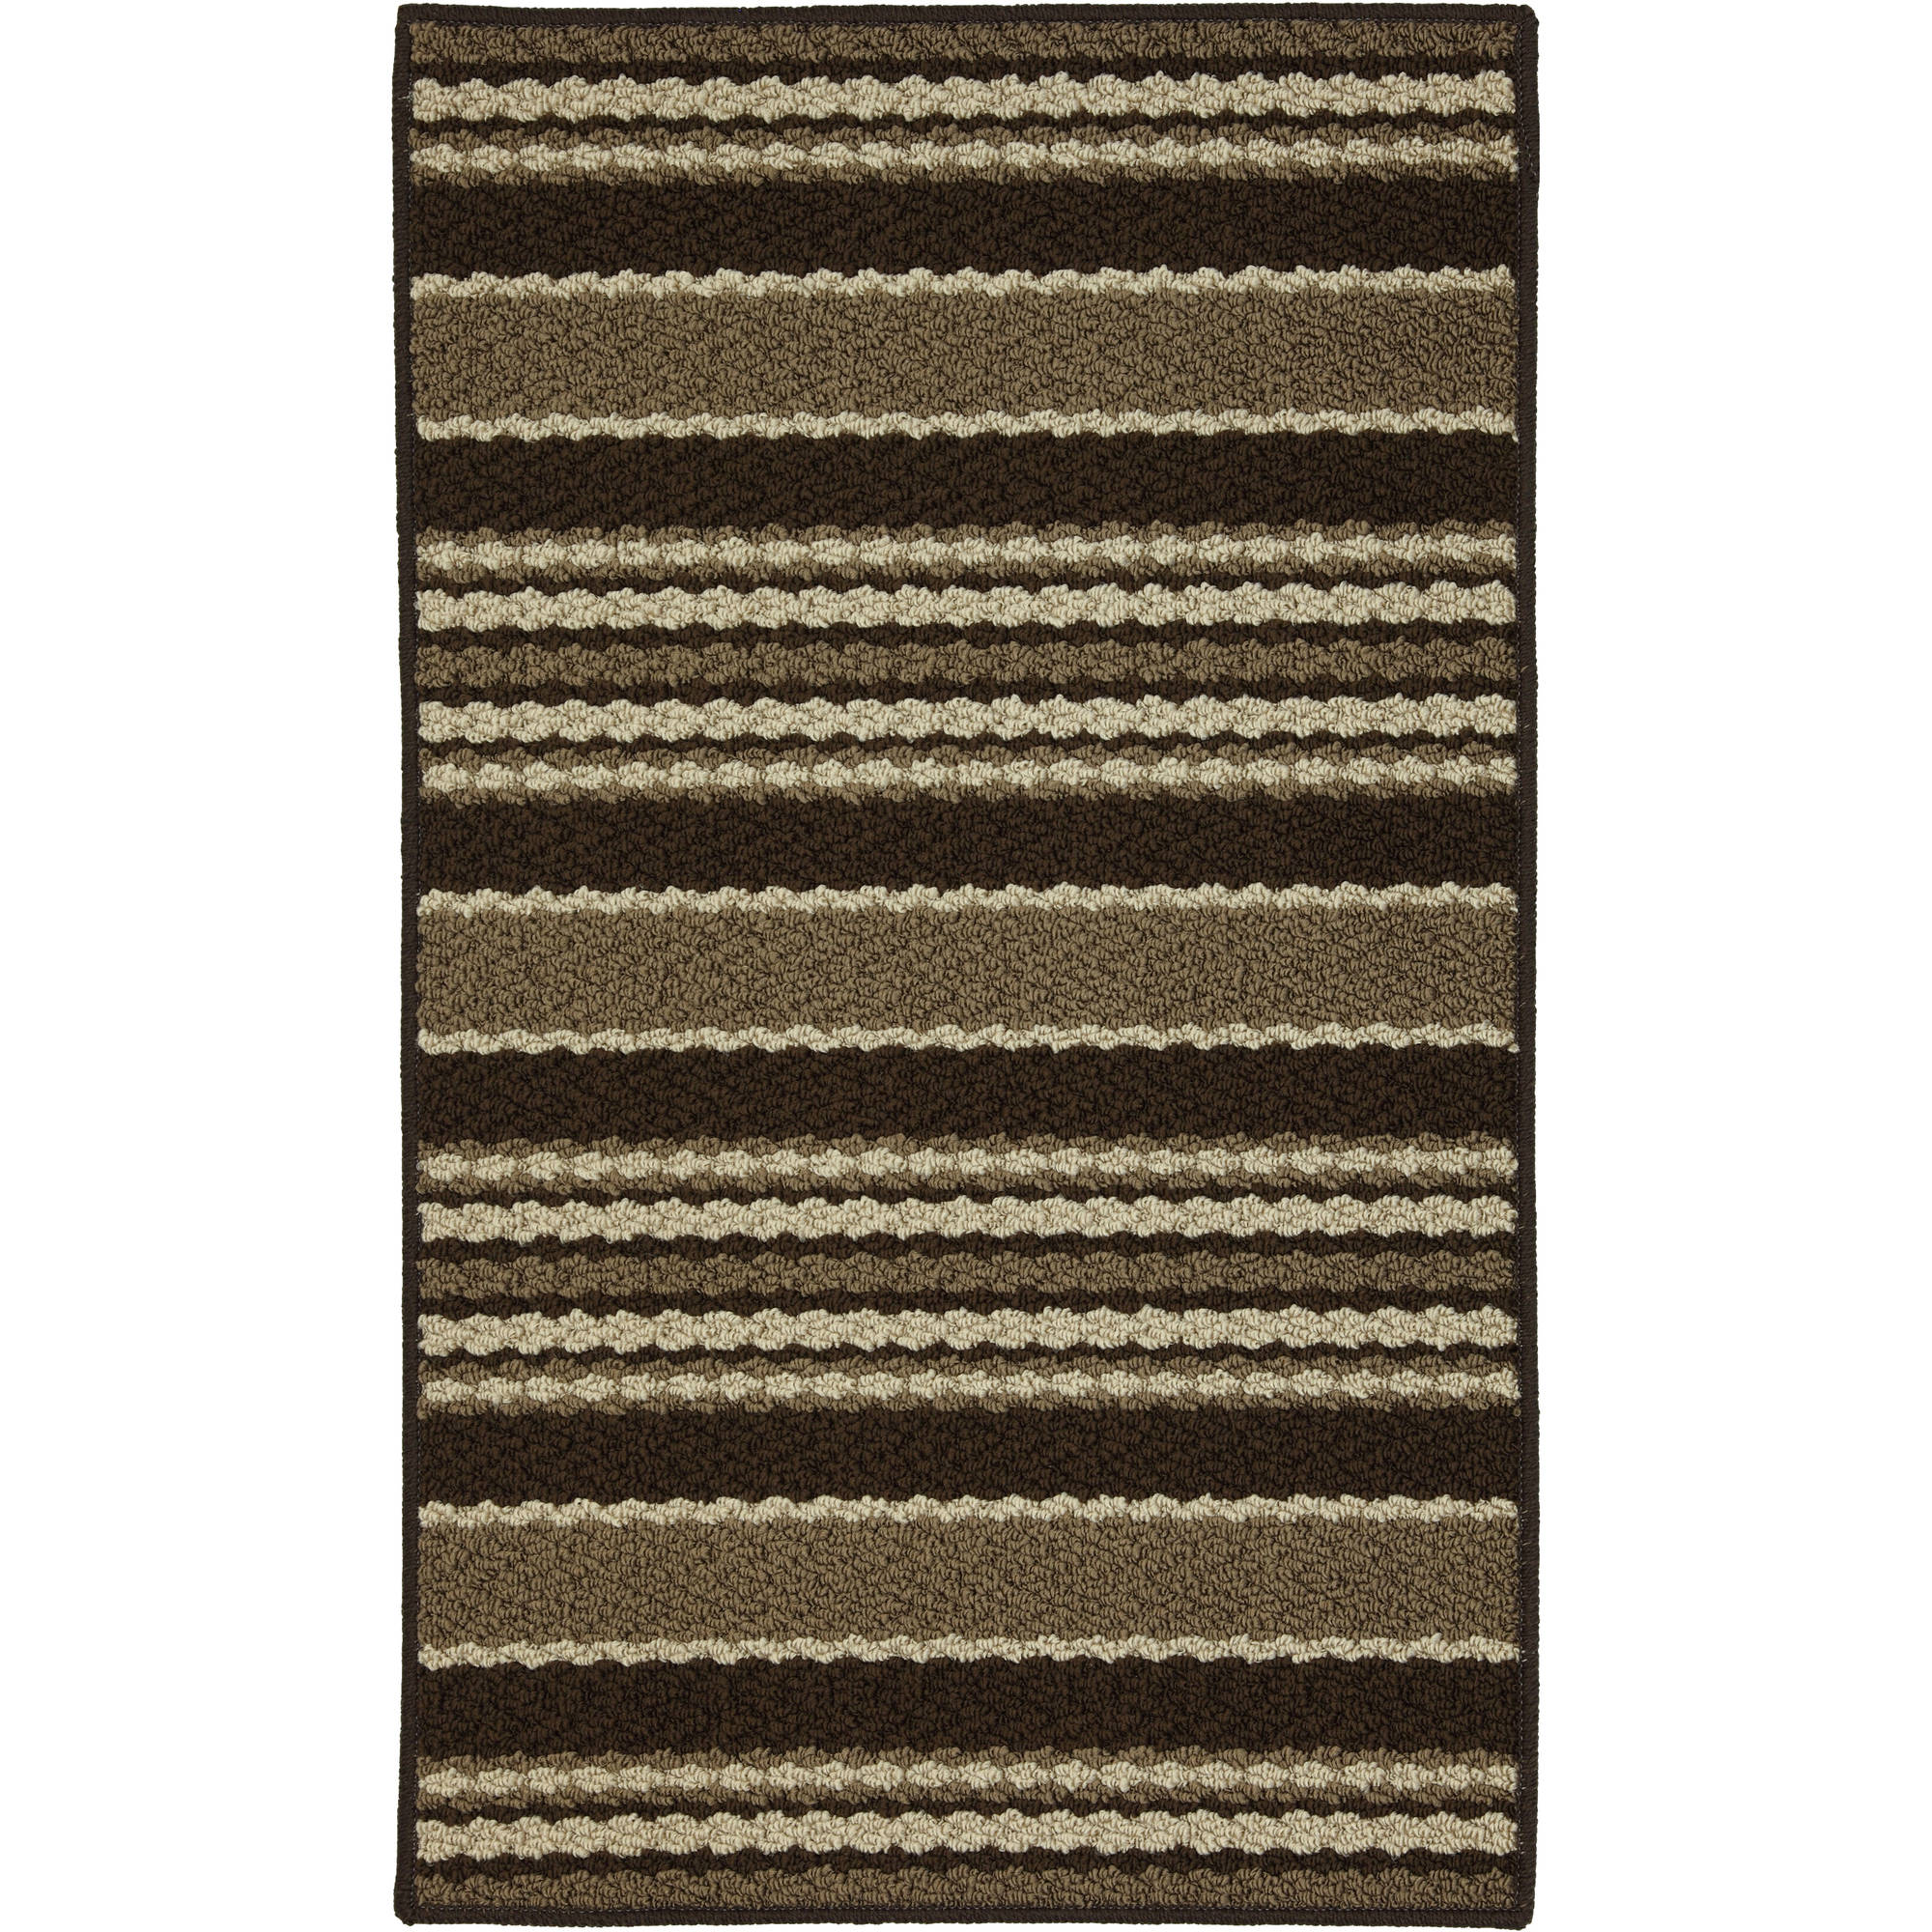 Mainstays Stripe Down Olefin Scatter Textured Rug